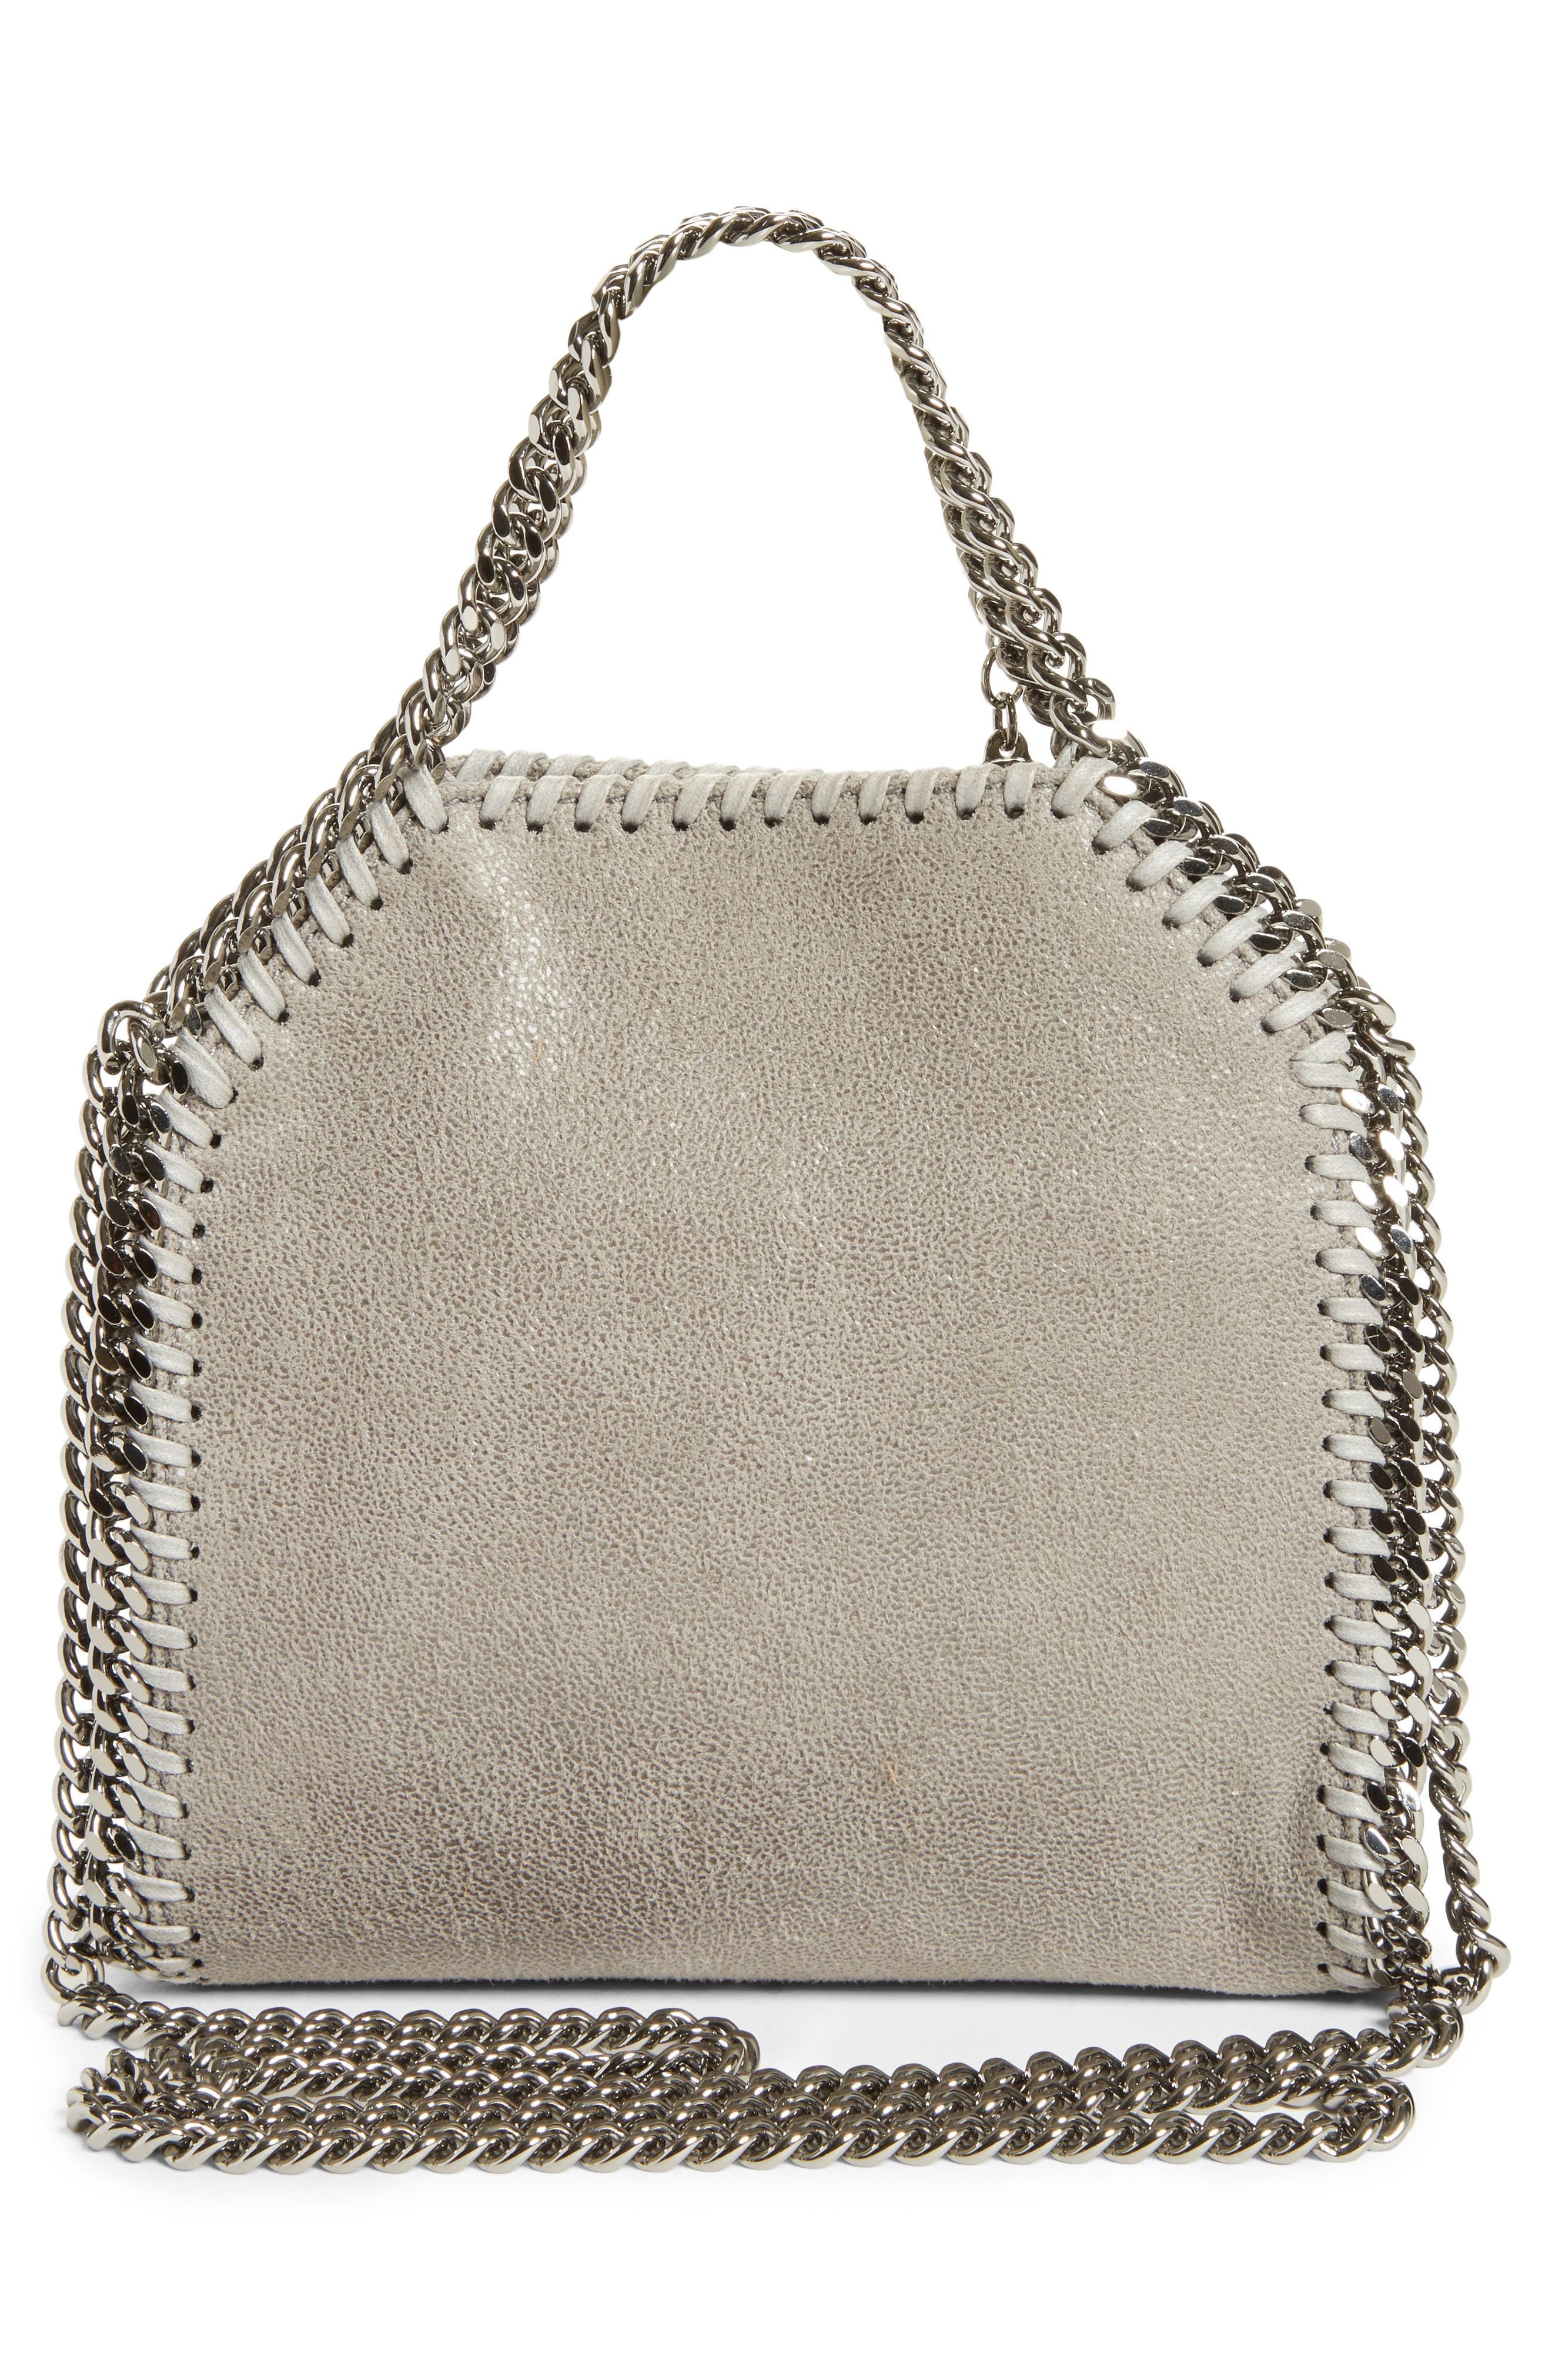 'Tiny Falabella' Faux Leather Crossbody Bag,                             Alternate thumbnail 3, color,                             Light Grey